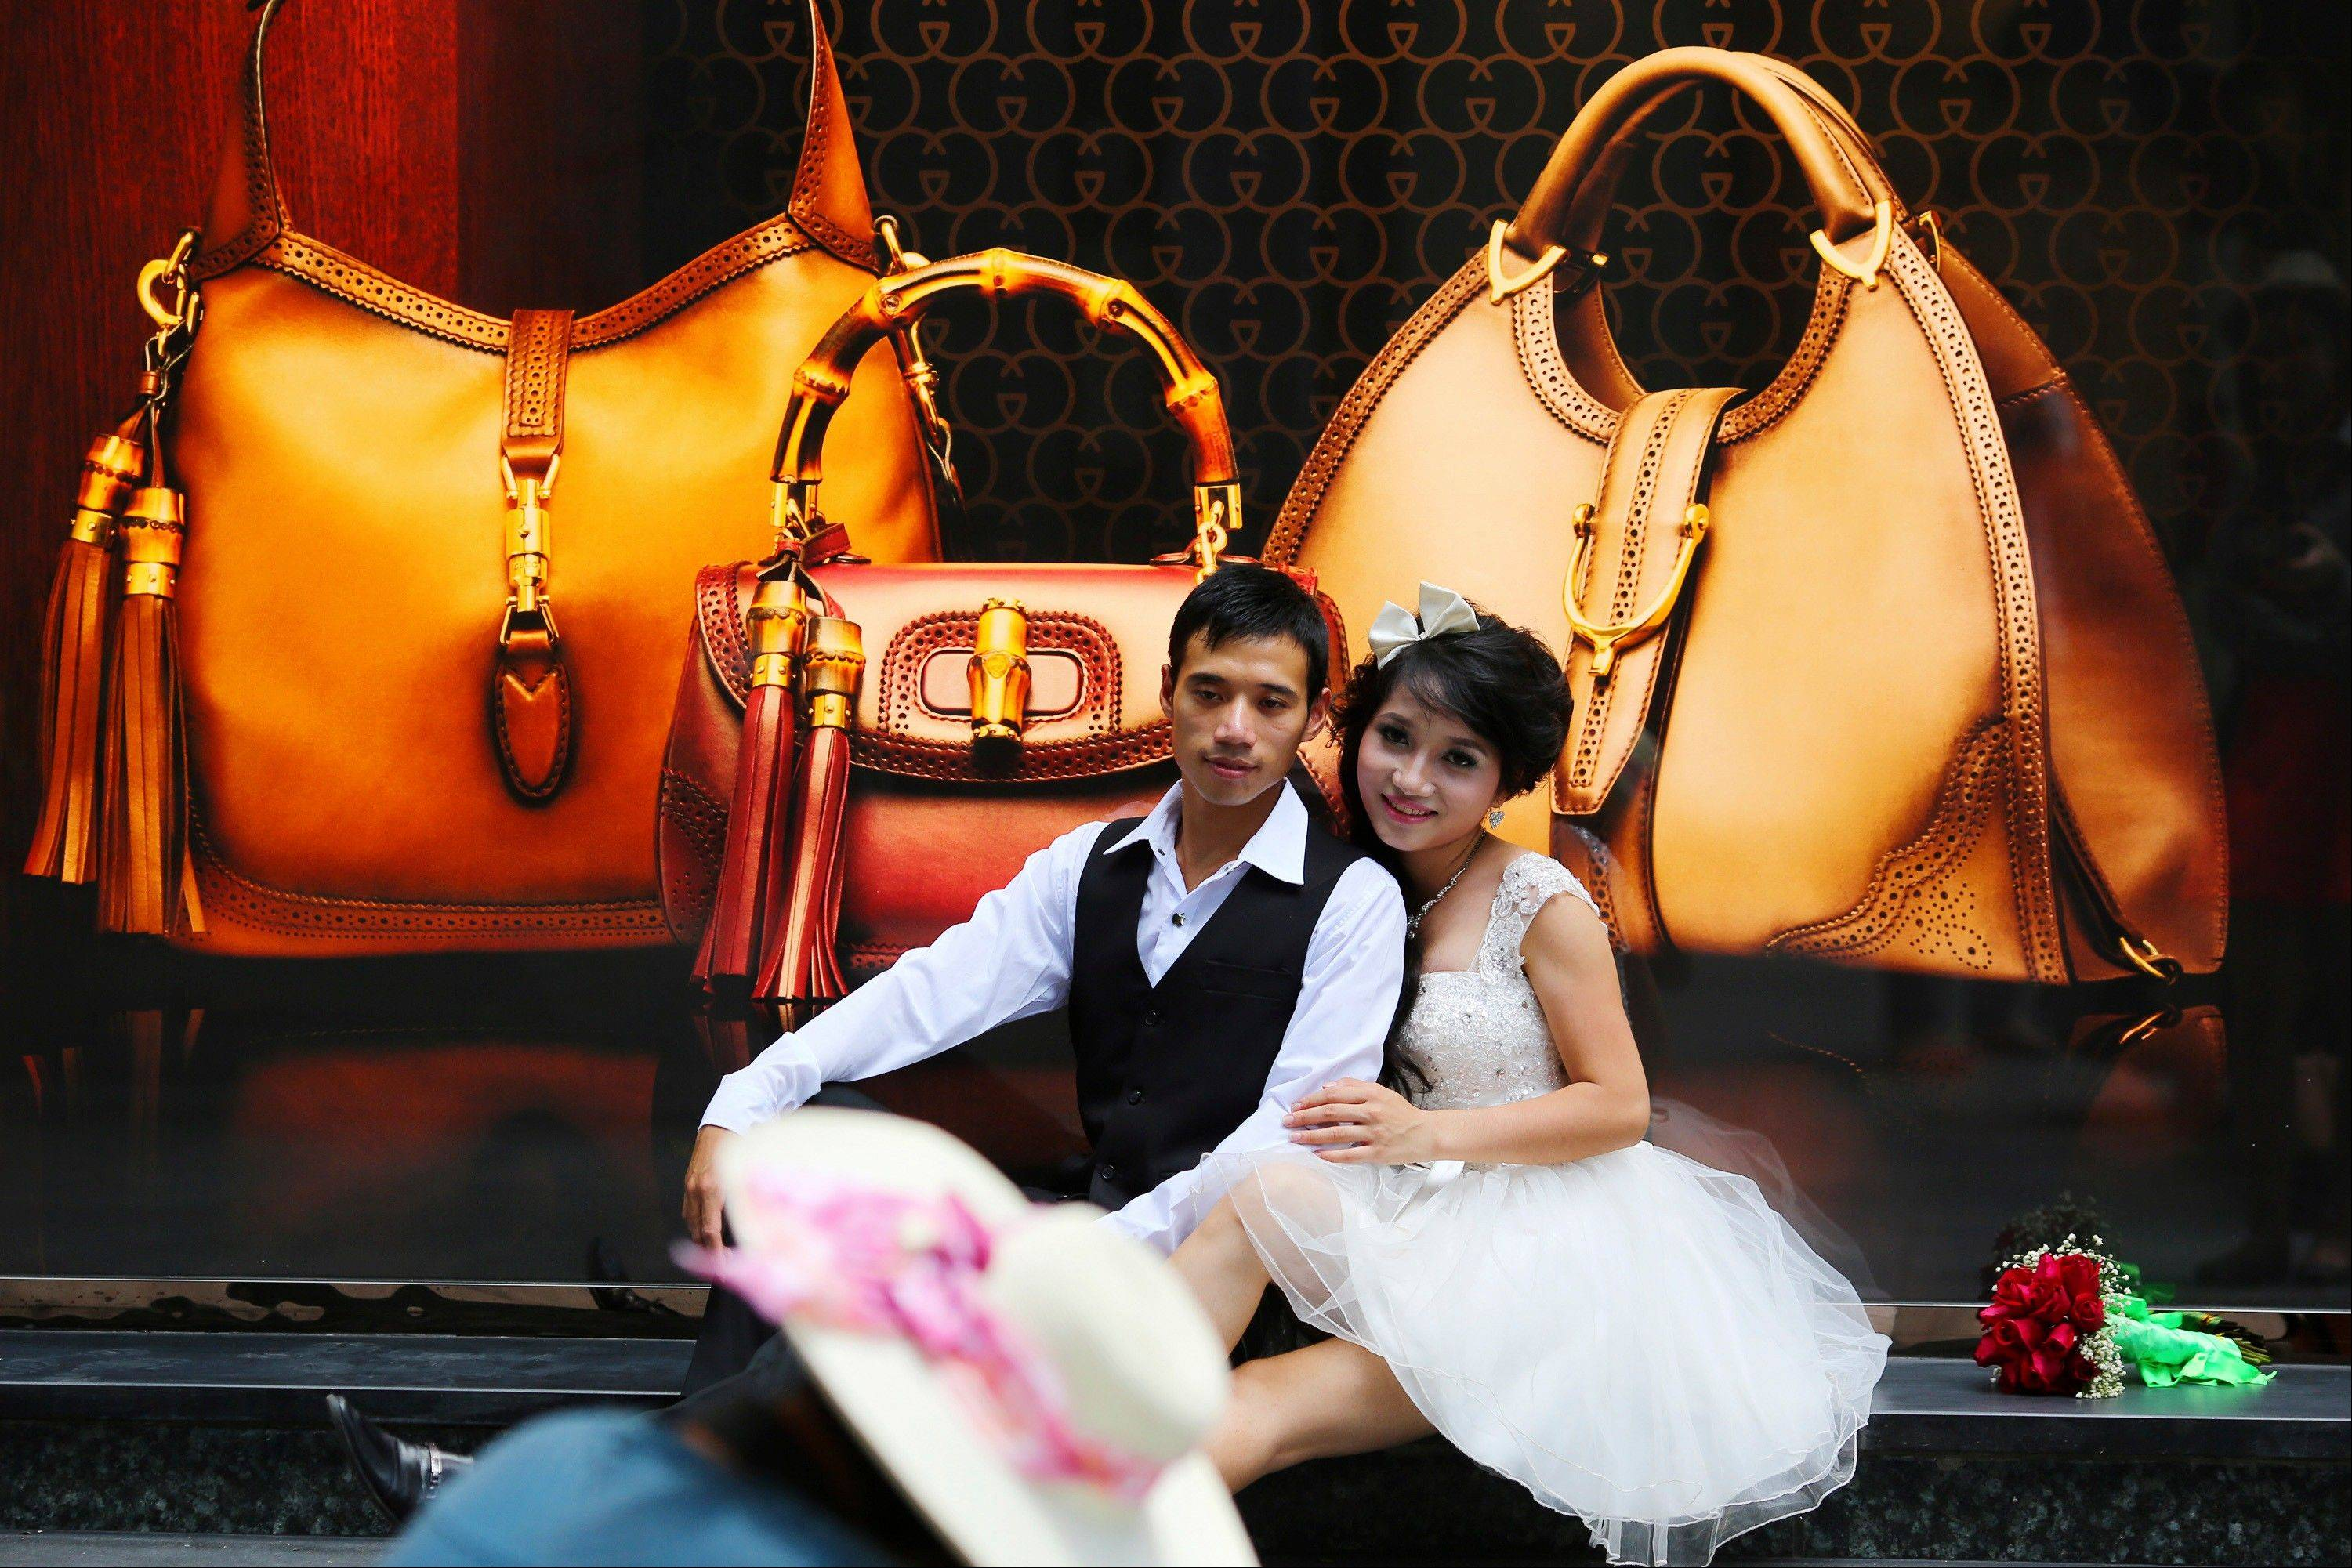 A couple pose for photos in front of a luxury shop in Hanoi, Vietnam. Once seen as an emerging Asian dynamo racing to catch up with its neighbors, Vietnam's economy is mired in malaise, dragged down by debt-hobbled banks, inefficient and corrupt state-owned enterprises and bouts of inflation.